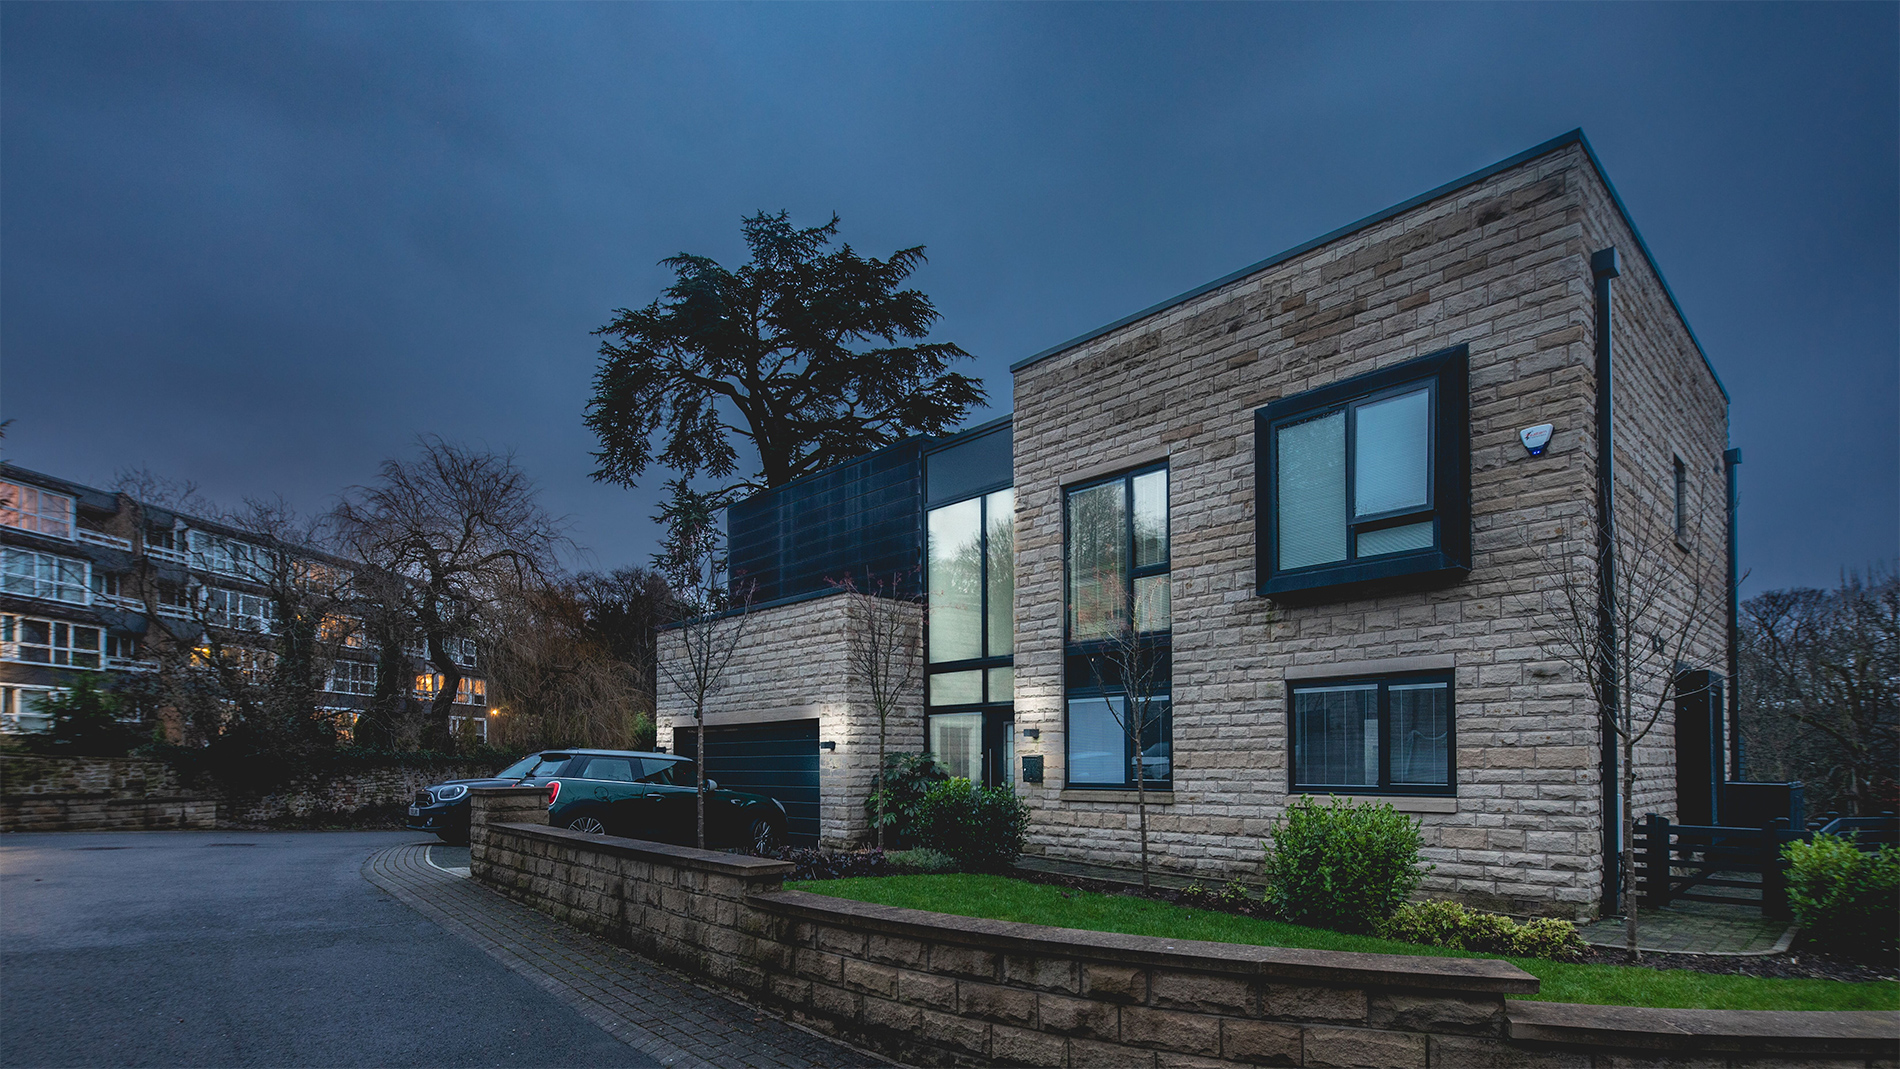 Storth Hollow Sheffield New Build Development Ranmoor 2